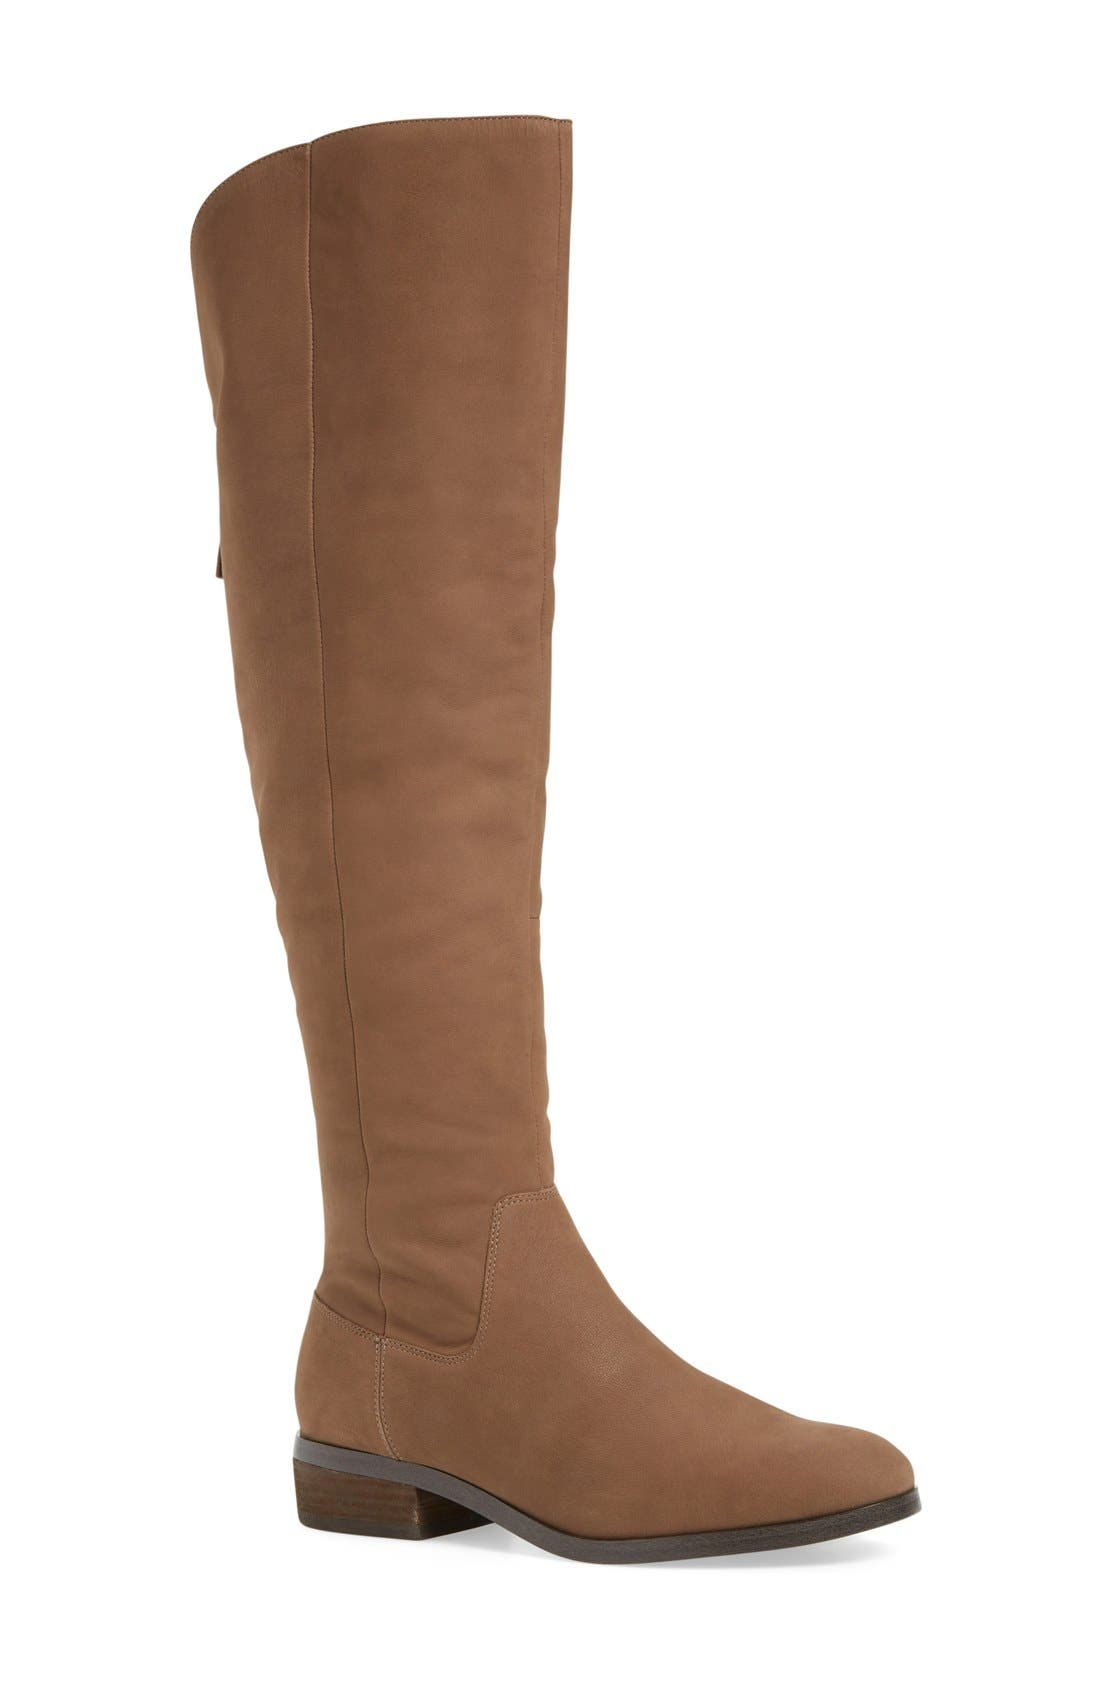 Main Image - Sole Society 'Andie' Over the Knee Boot (Women)